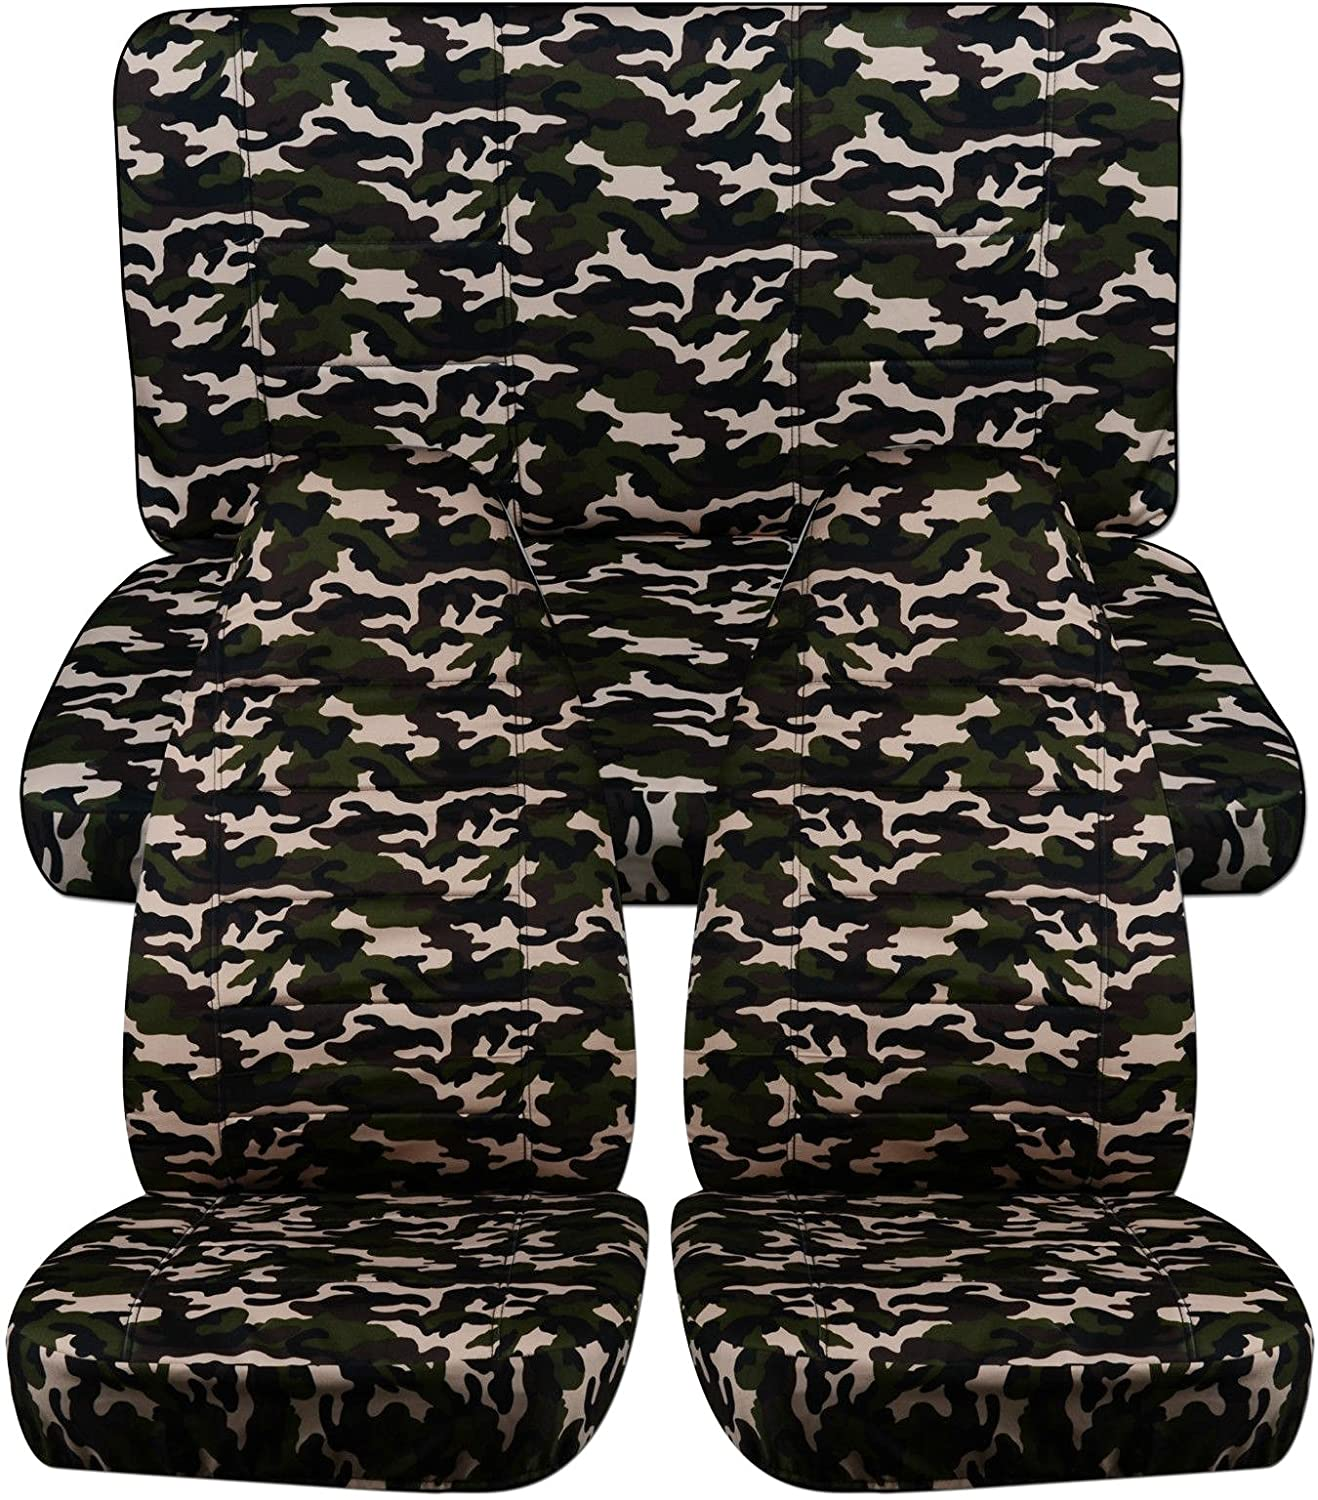 Totally Covers Compatible with 1997-2006 Jeep Wrangler TJ Camo Seat Covers: Brown Camouflage - Full Set: Front & Rear (19 Prints) 2-Door Complete Back Bench